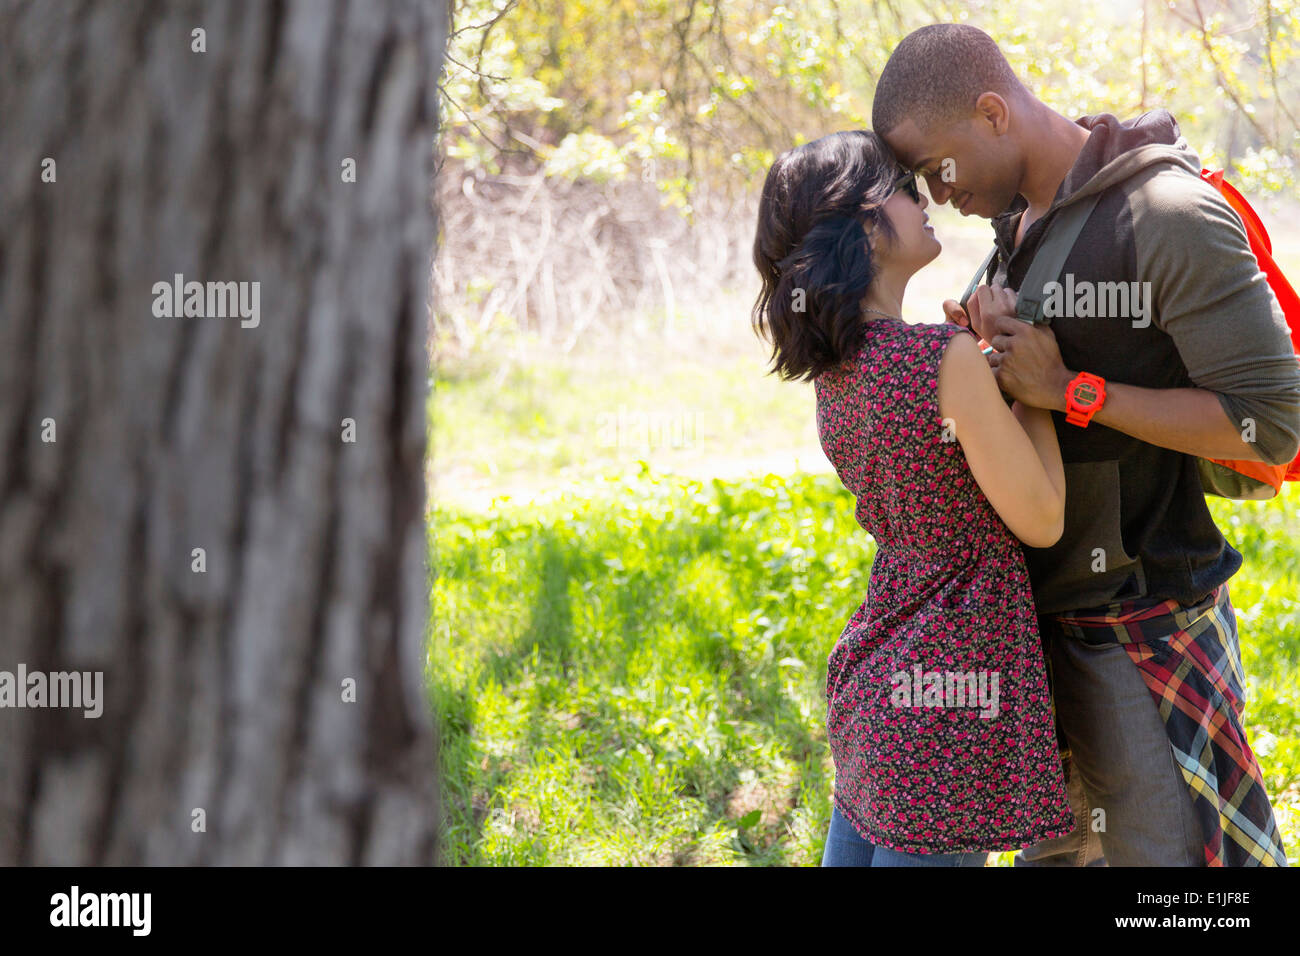 Young couple holding hands and head to head in park - Stock Image